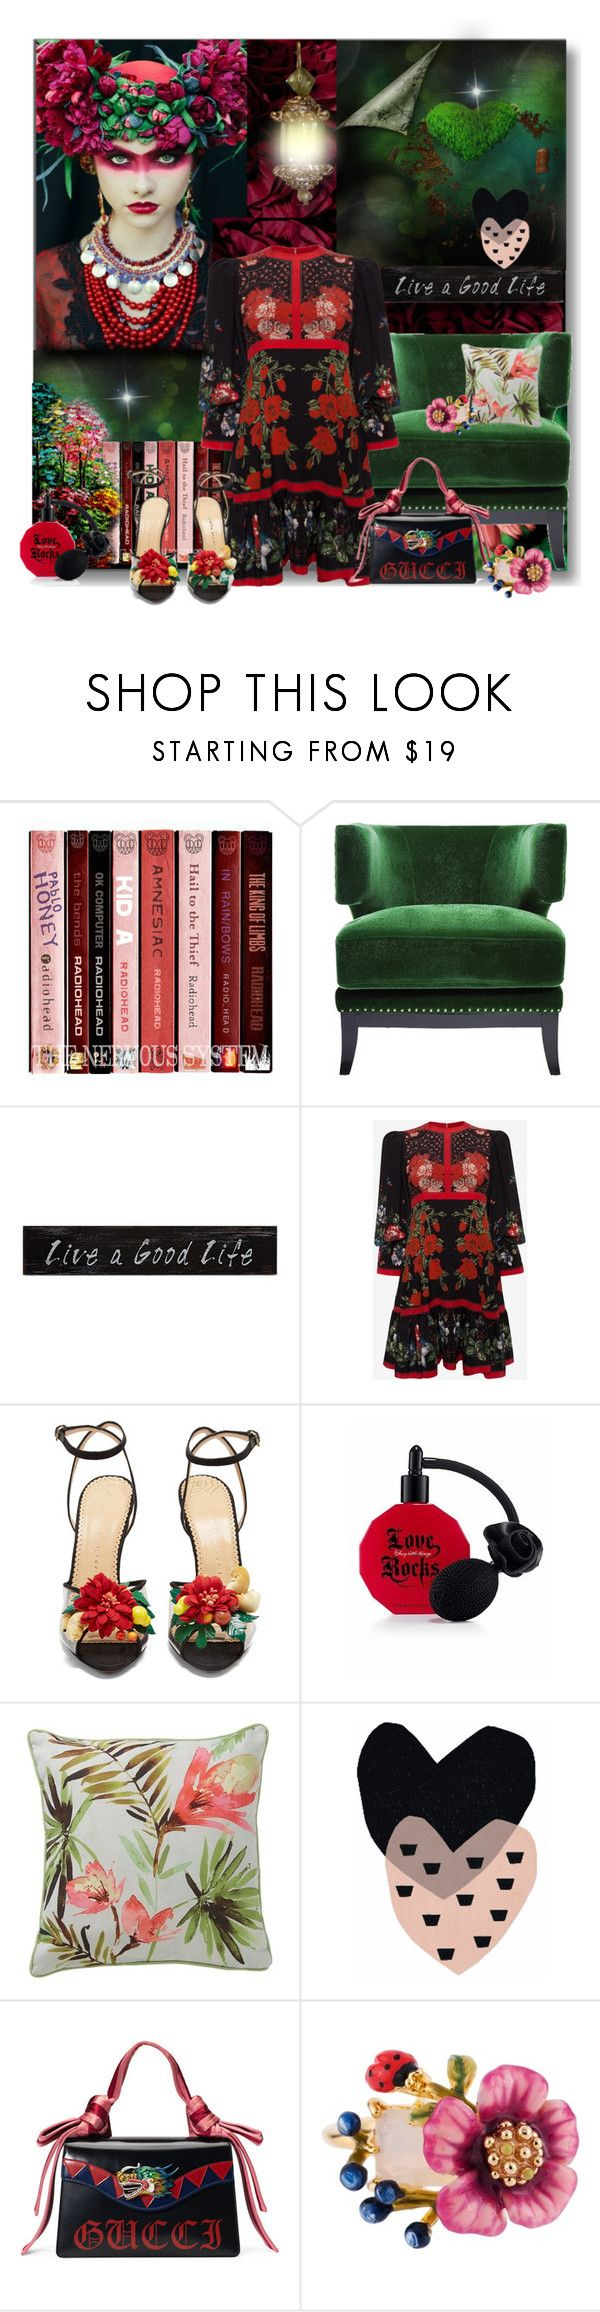 """""""Live A Good Life......"""" by nz-carla ❤ liked on Polyvore featuring KARE, Creative Co-op, Alexander McQueen, Charlotte Olympia, Victoria's Secret, Gucci and Les Néréides"""